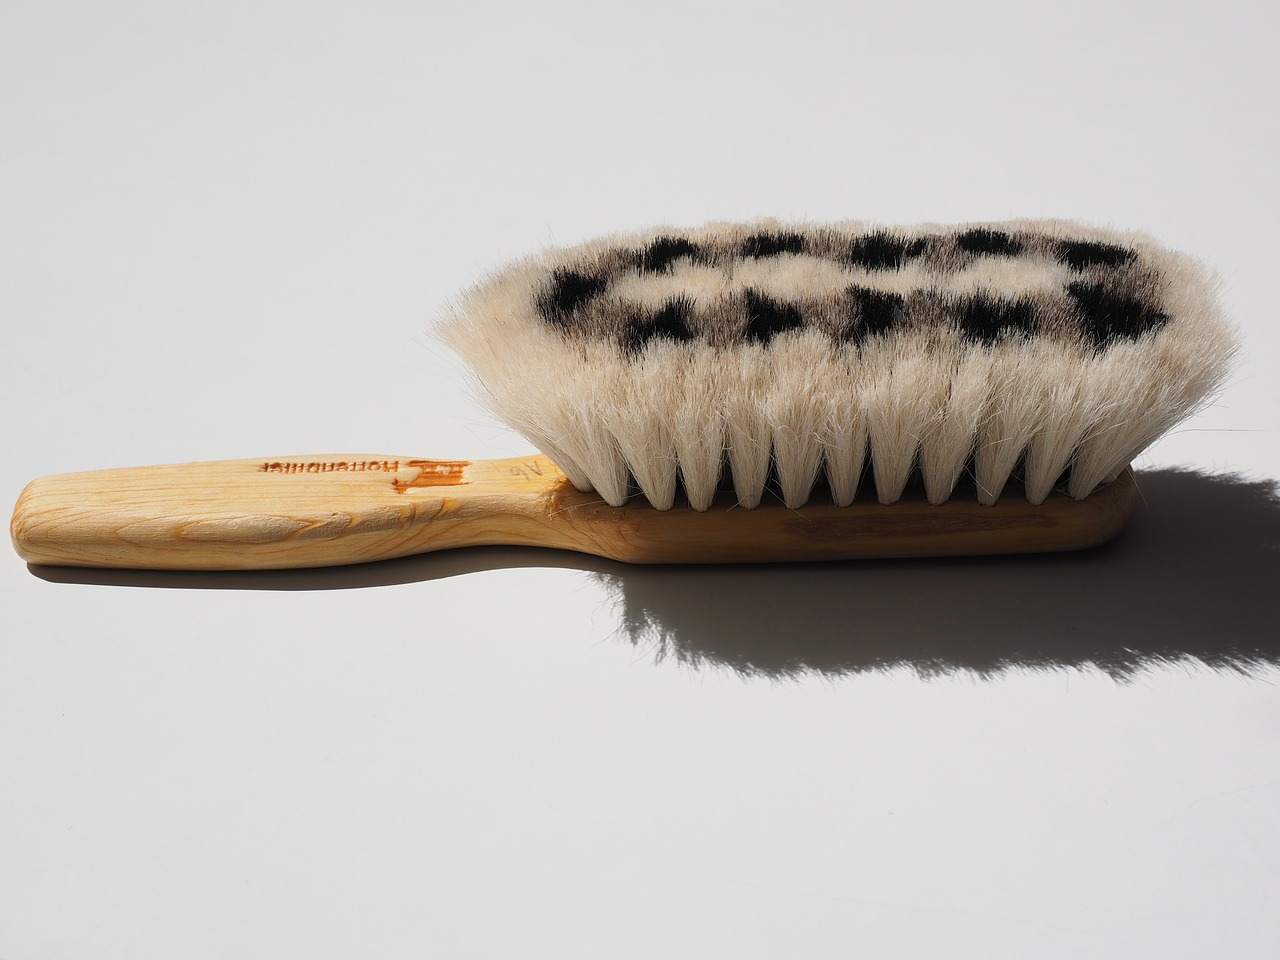 goat hair brush brush clean wipe feather duster free photo from